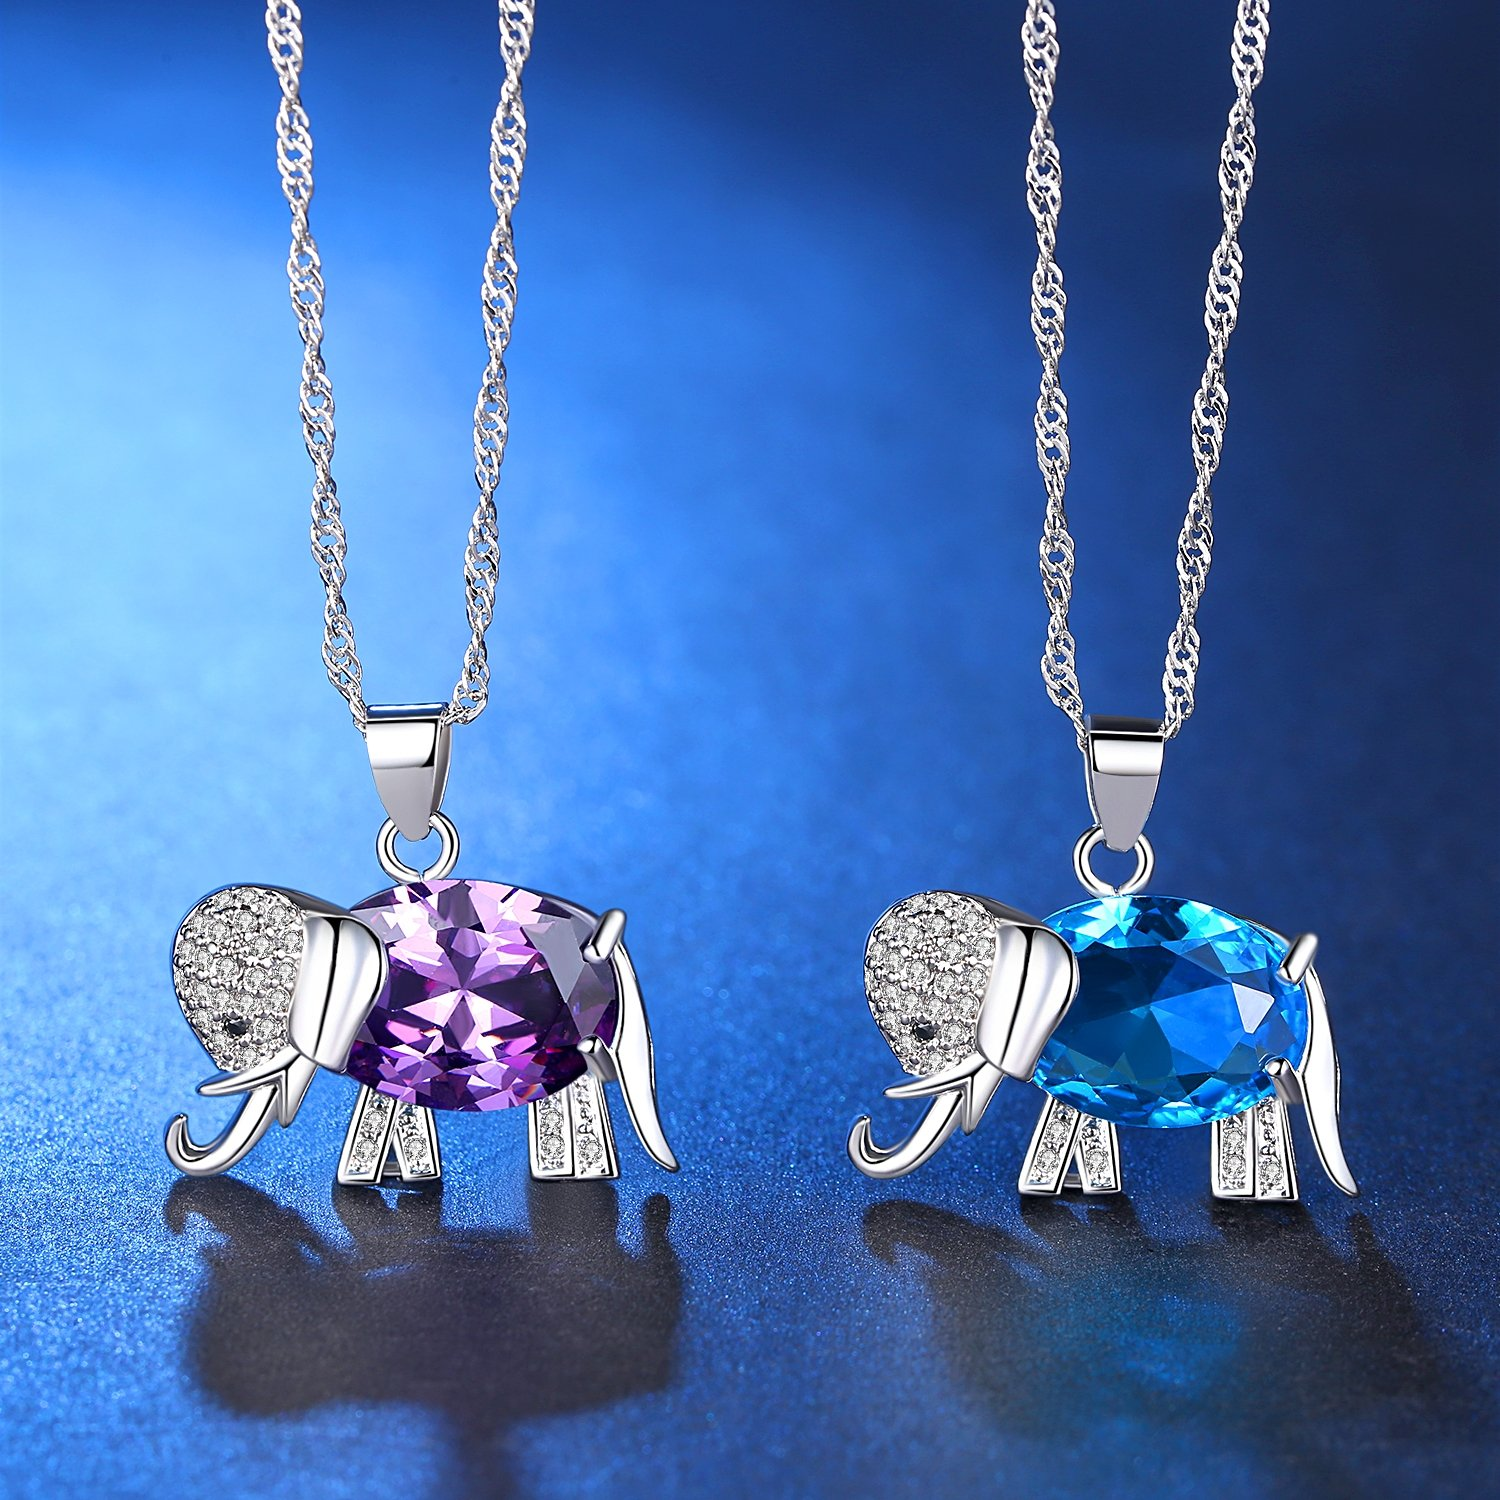 FLORAY Womens and Girls Pendant Necklace Blue High Quality Crystal Elephant Best Gift for Ladies USIAP3rE